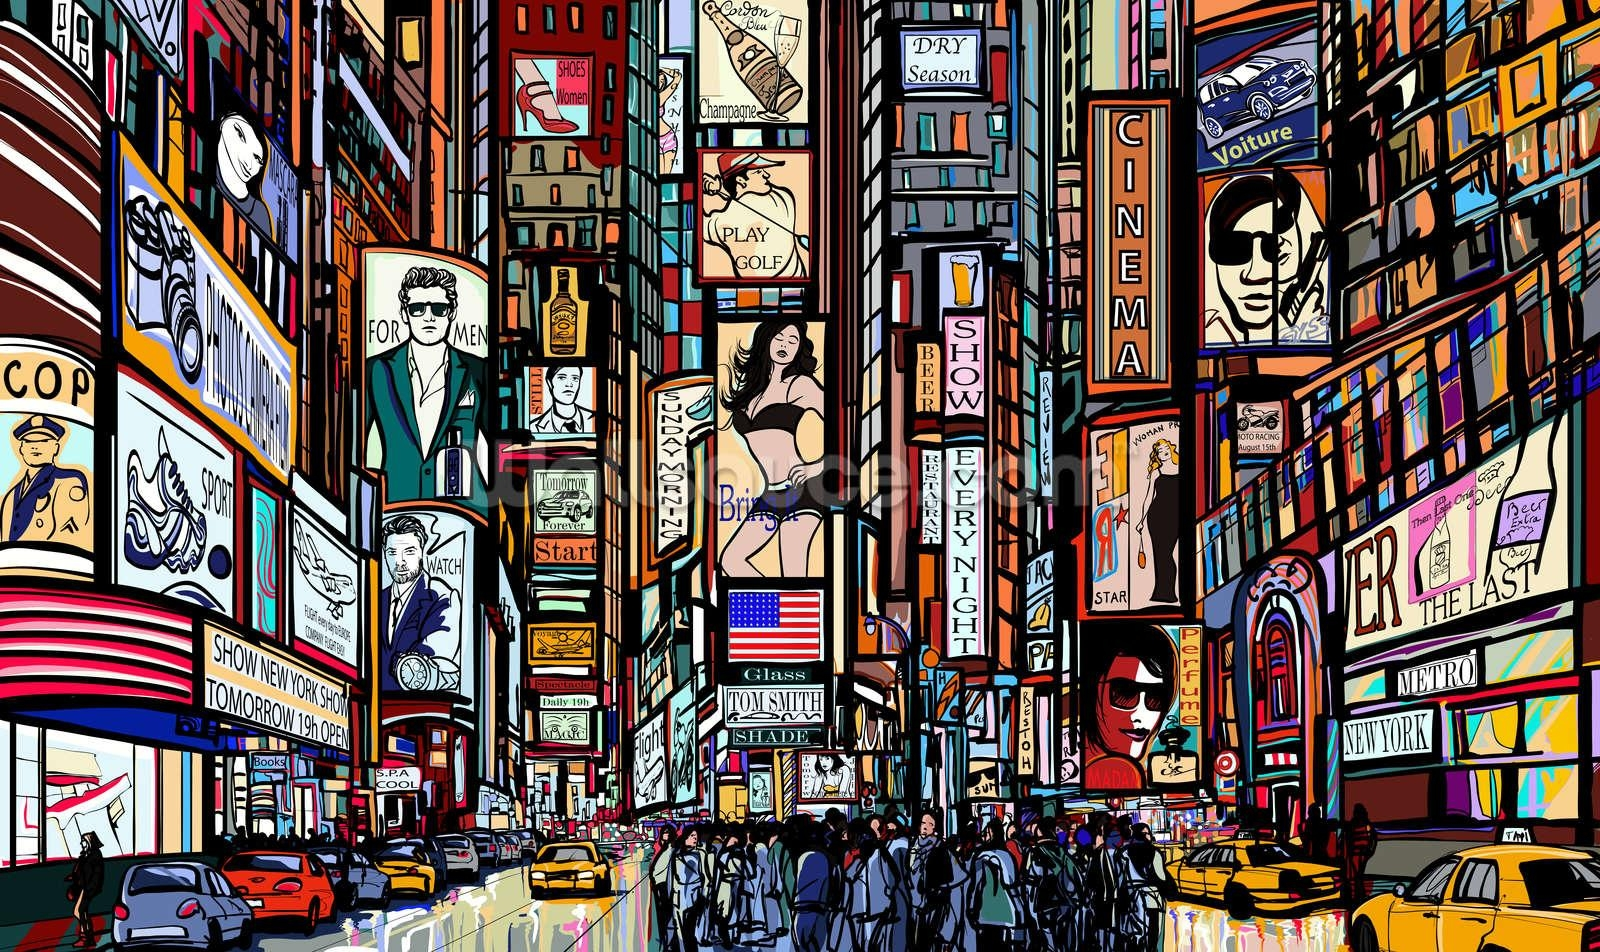 Times Square Abstract Wallpaper Wall Mural | Wallsauce Usa Intended For Abstract Art Wall Murals (View 18 of 20)